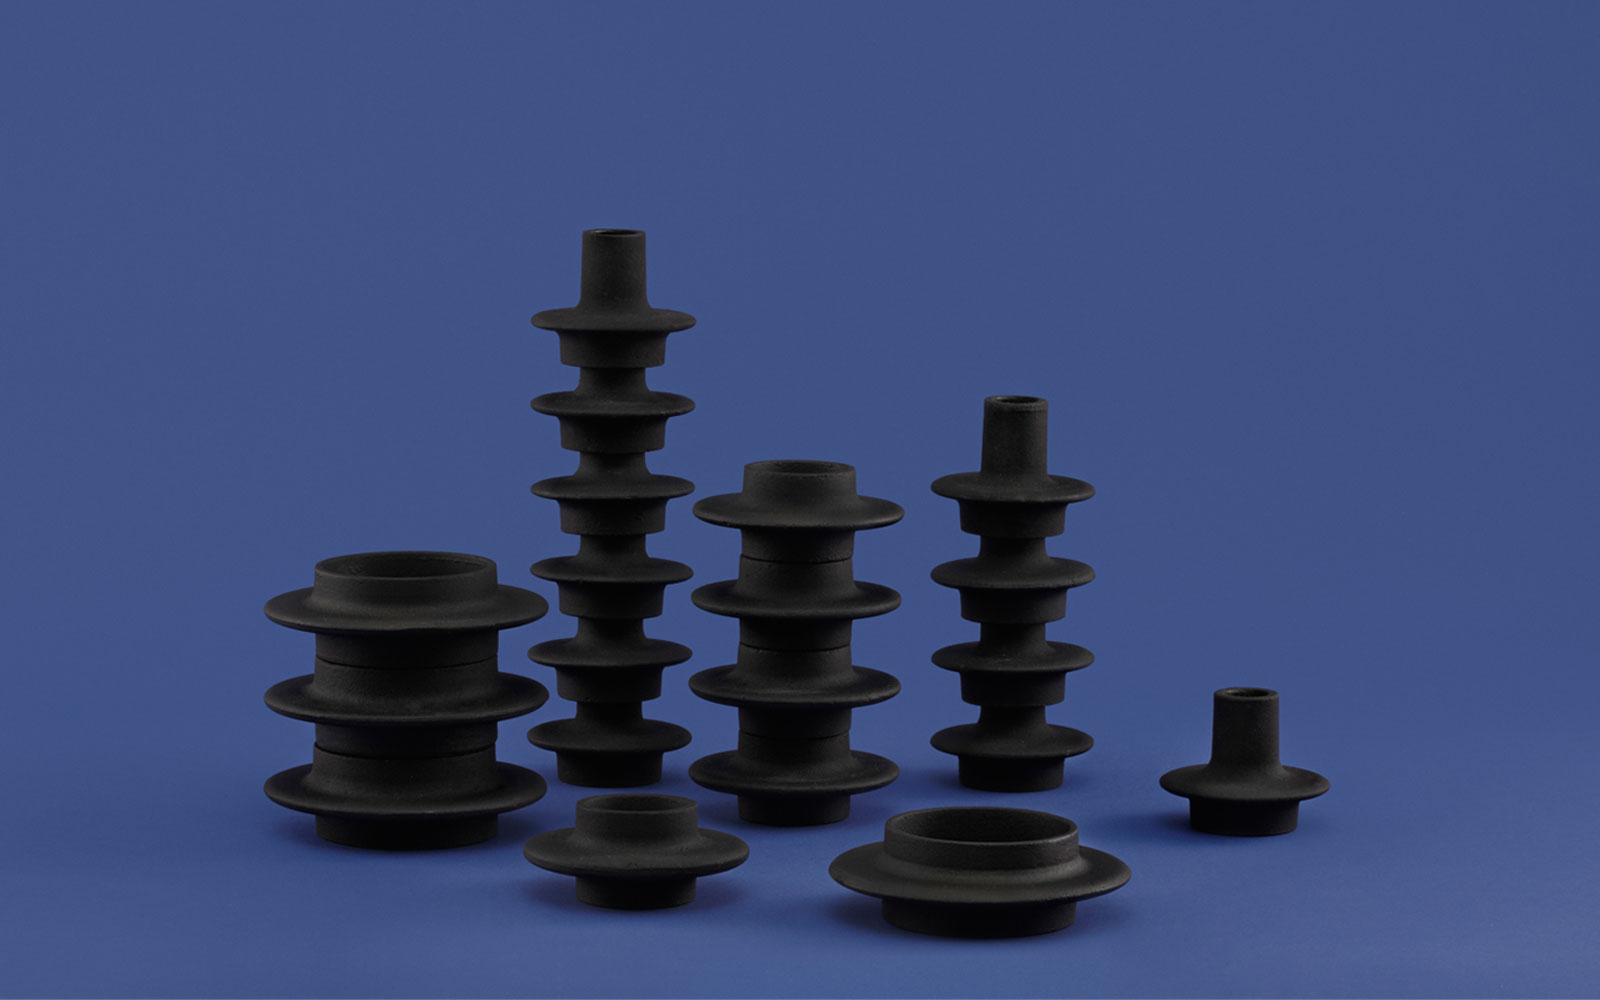 Heima candleholders castiron black familiy stacked group on blue background